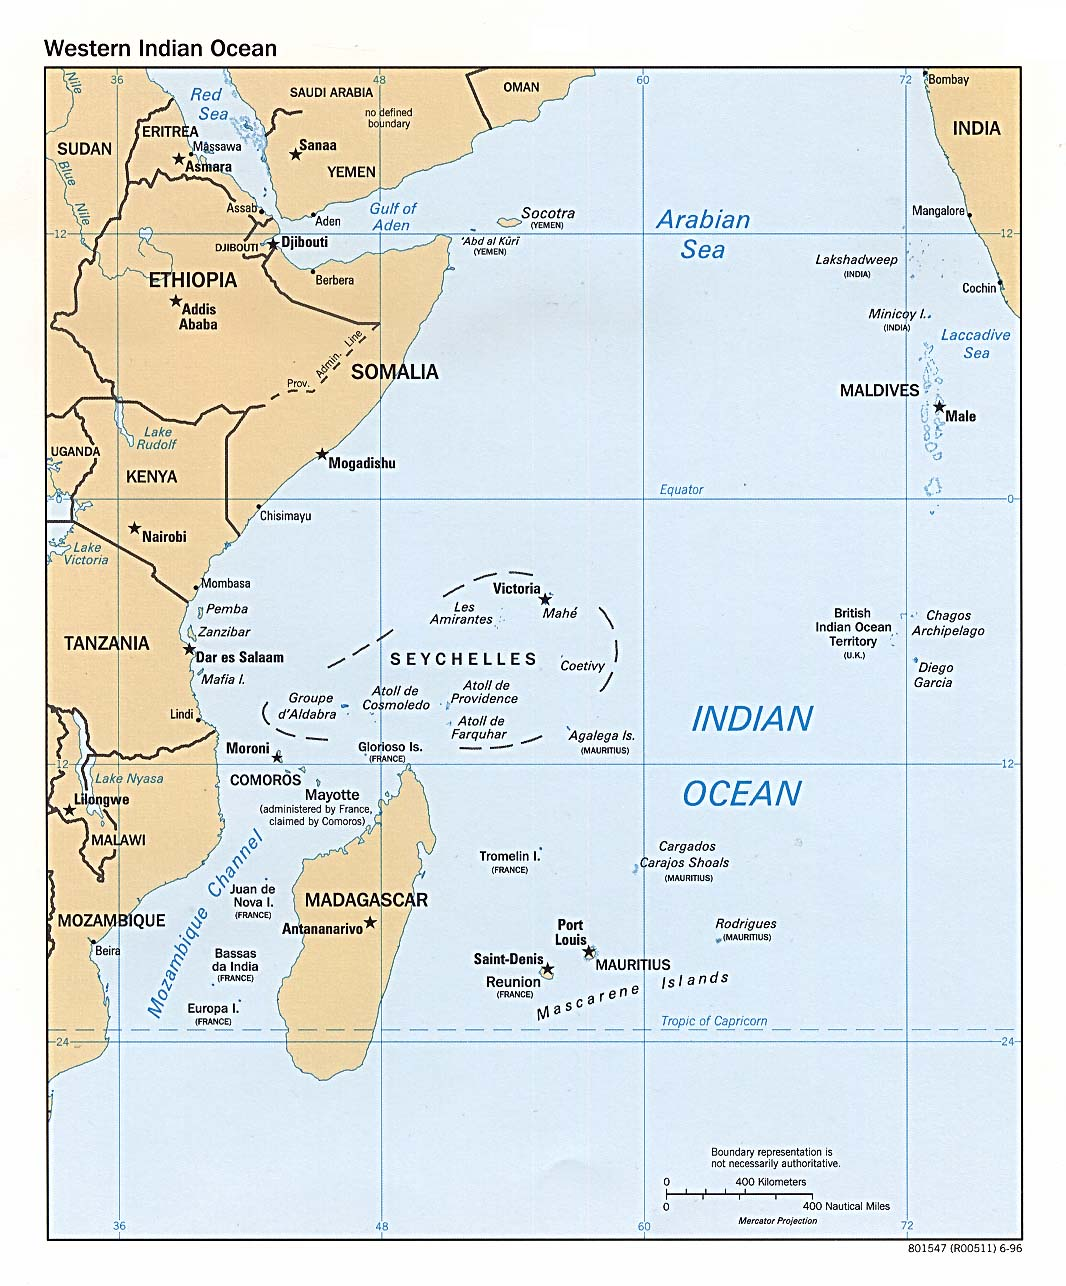 Indian Ocean West Political Map